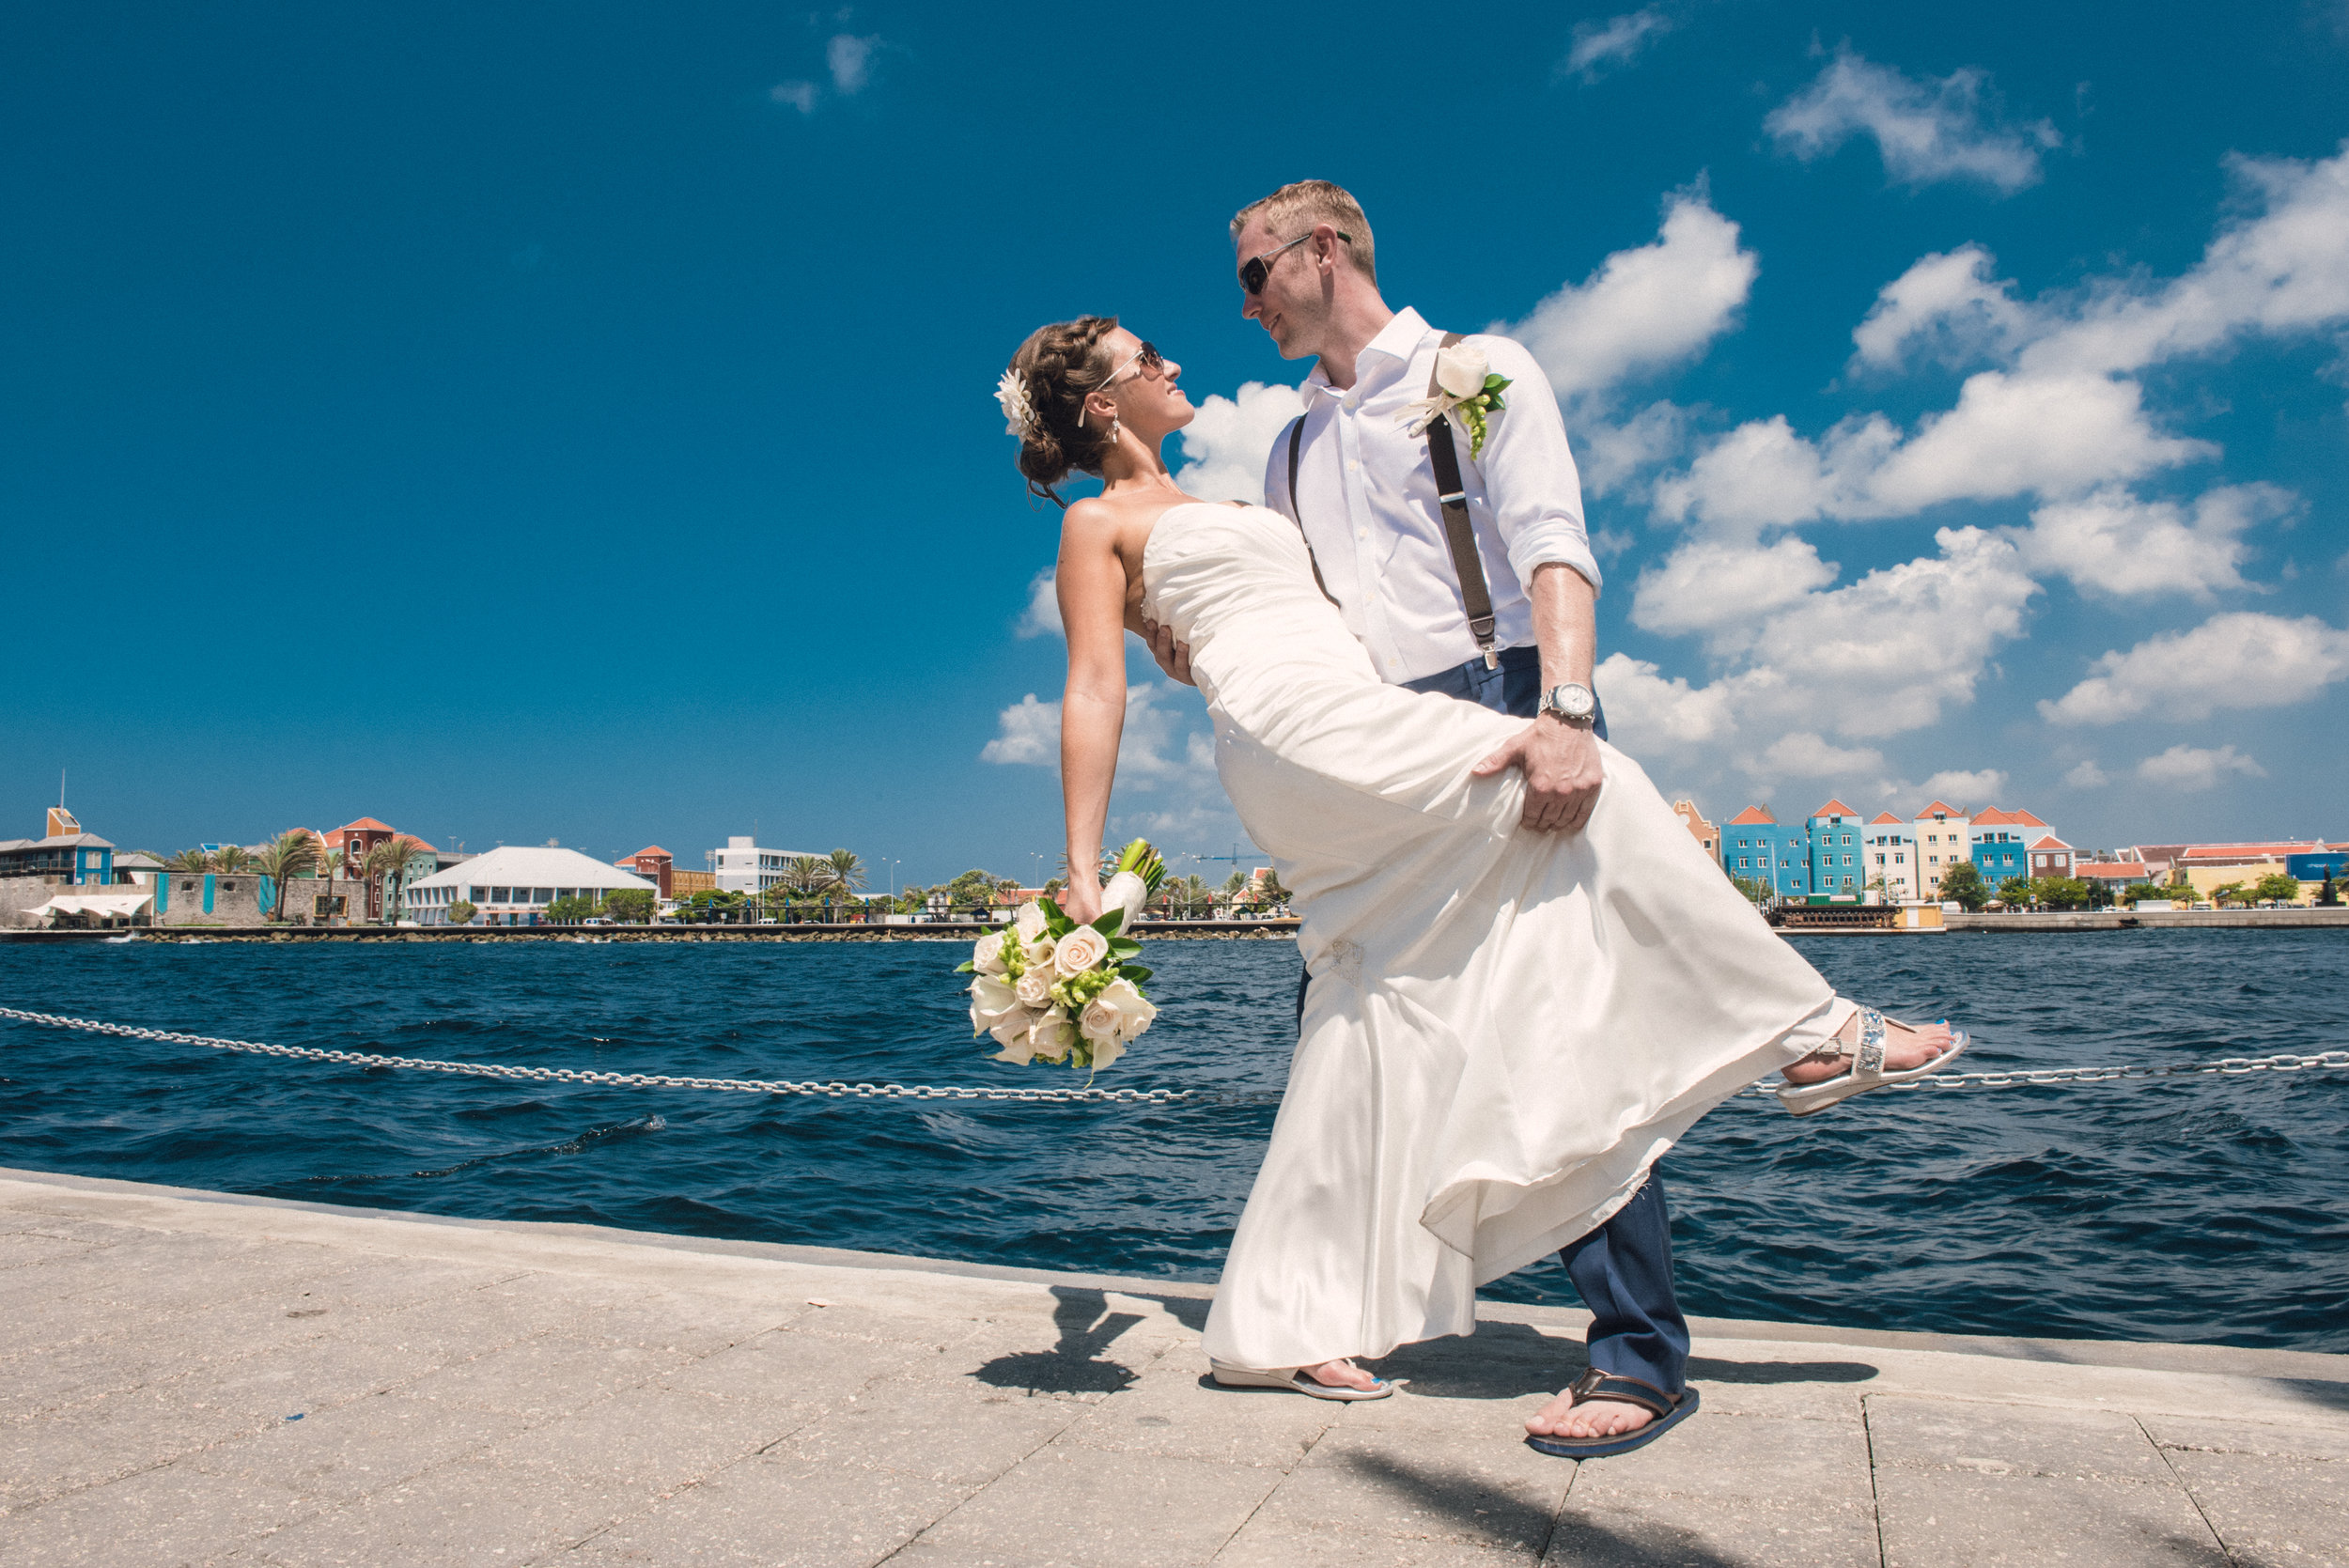 Destination Weddings - Contact for pricing.